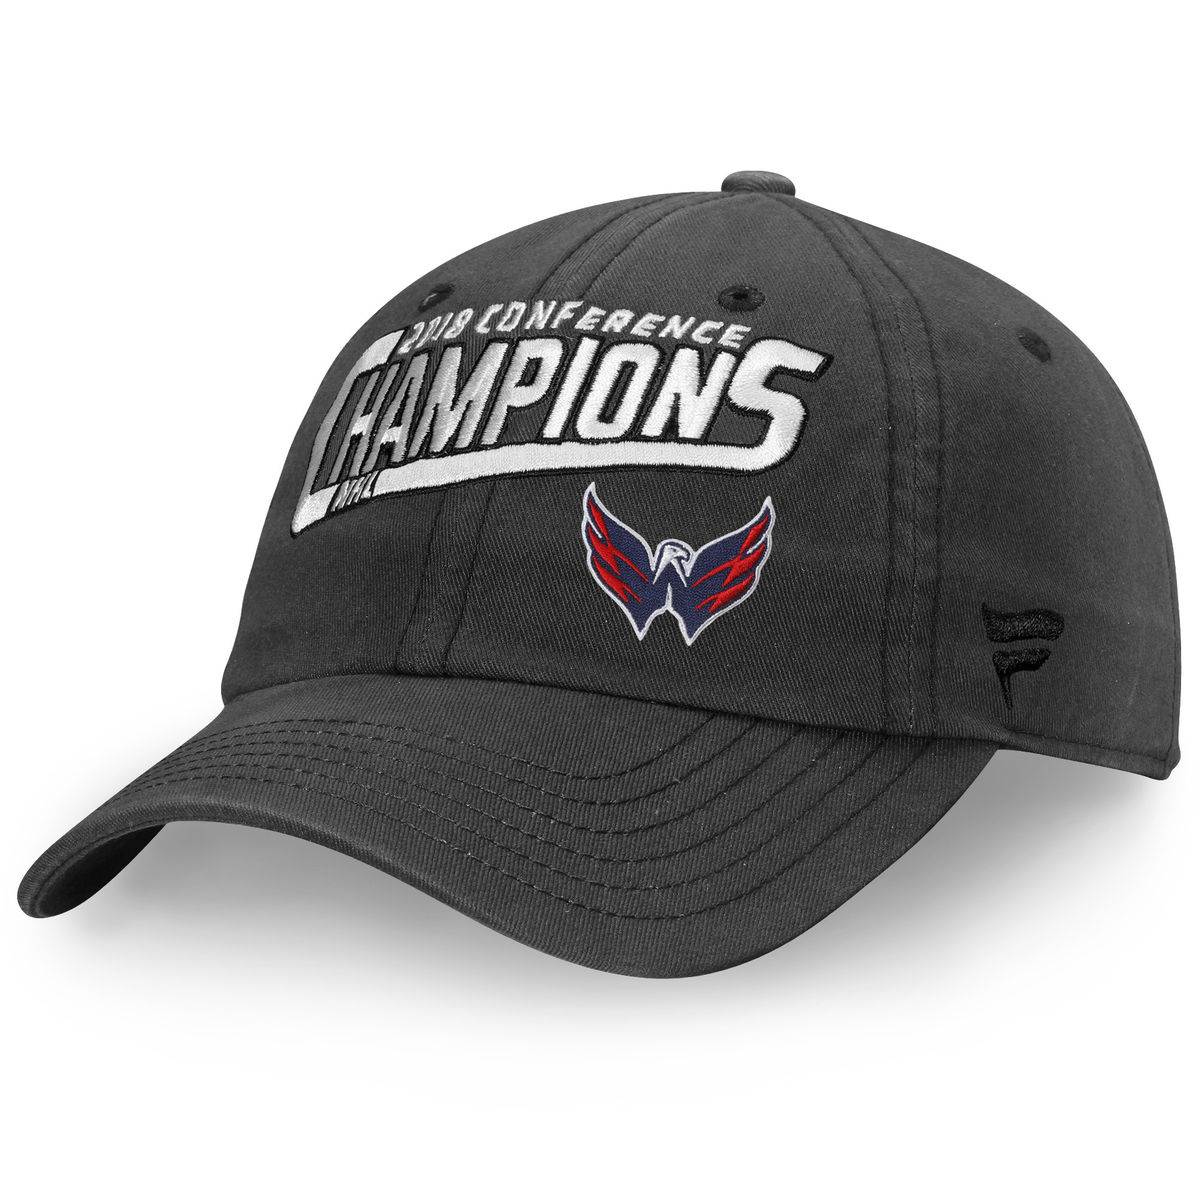 0345132aa9428 The NHL s store on Fanatics is now selling Conference Champions shirts and  hats. Here are a few of the designs. What a time to be alive. Next up